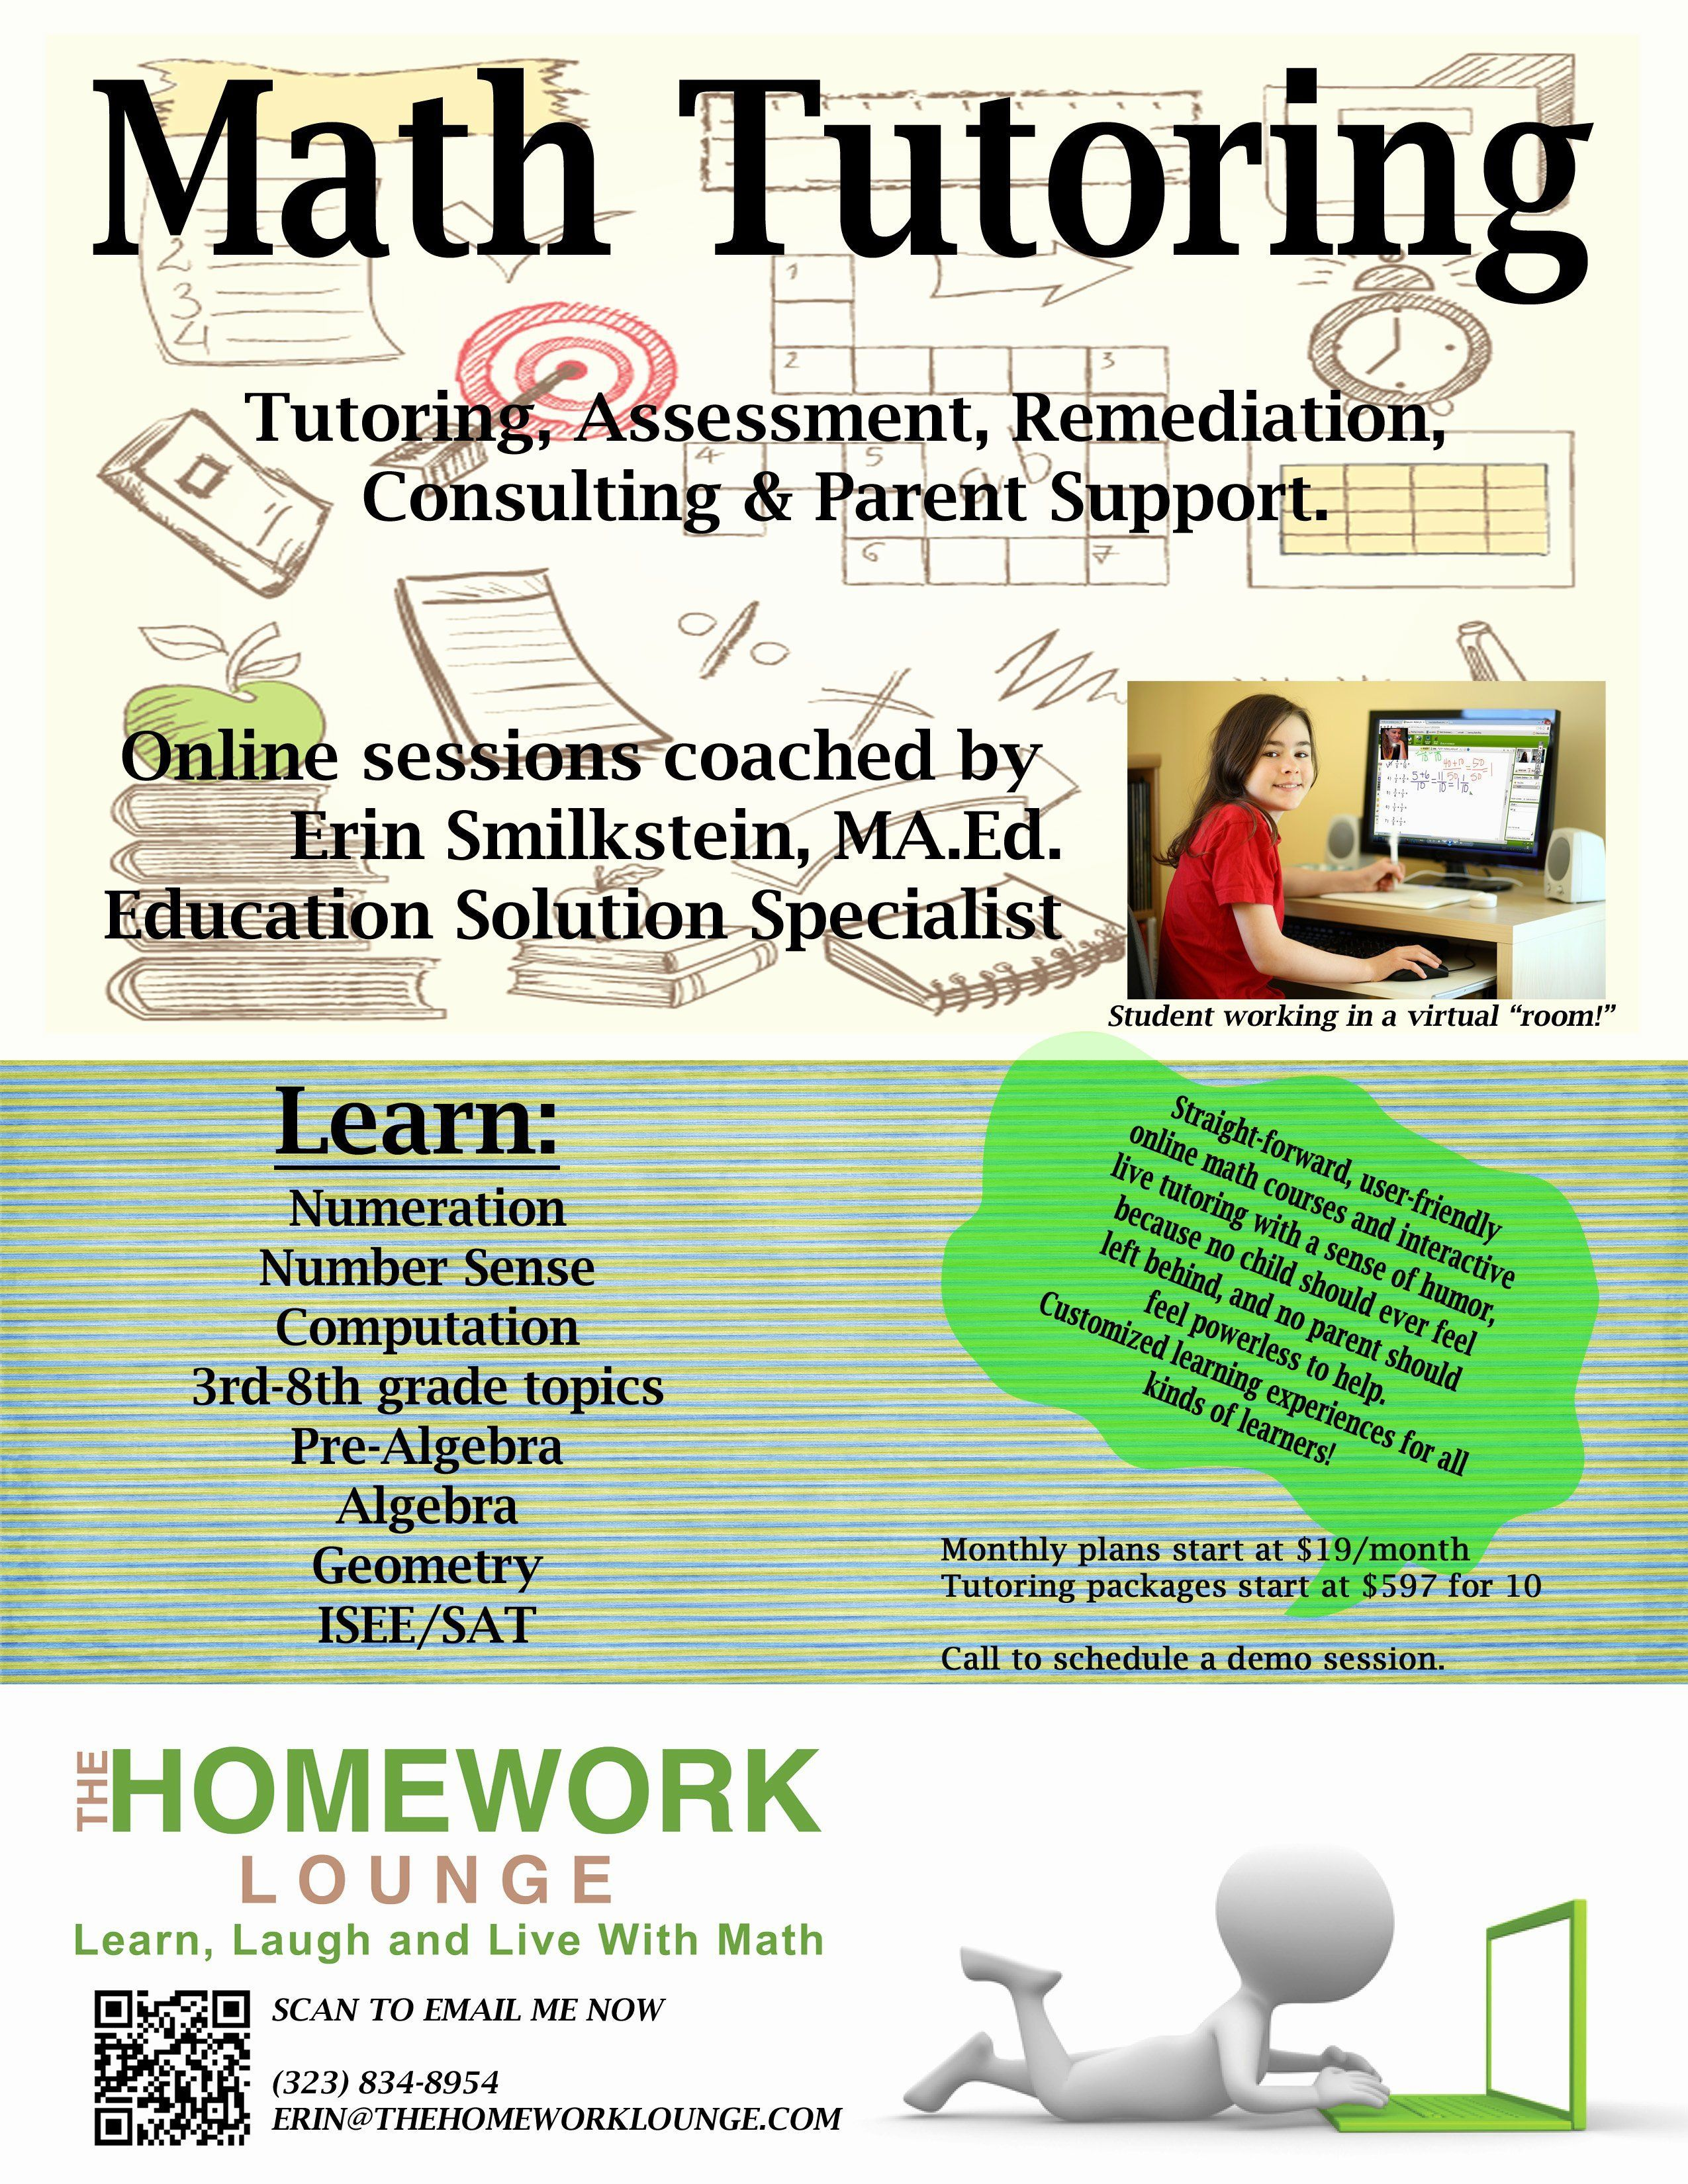 001 Wondrou Tutoring Flyer Template Free Photo  WordFull